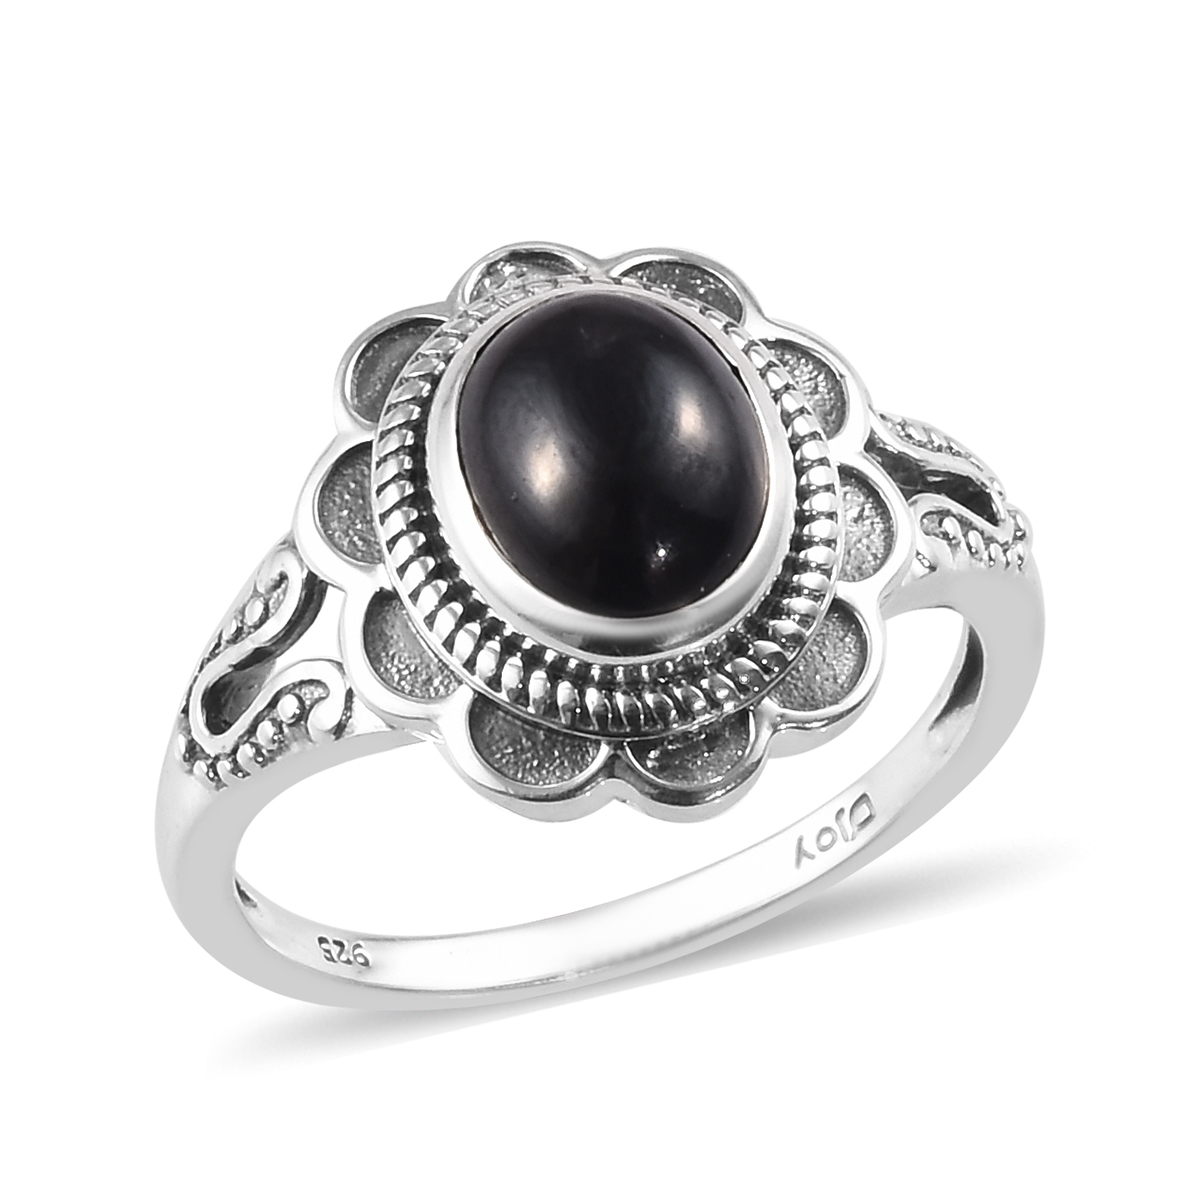 Authentic Endless Sterling Silver Black Pearl Flower Solid 925 Breloque #41250-2